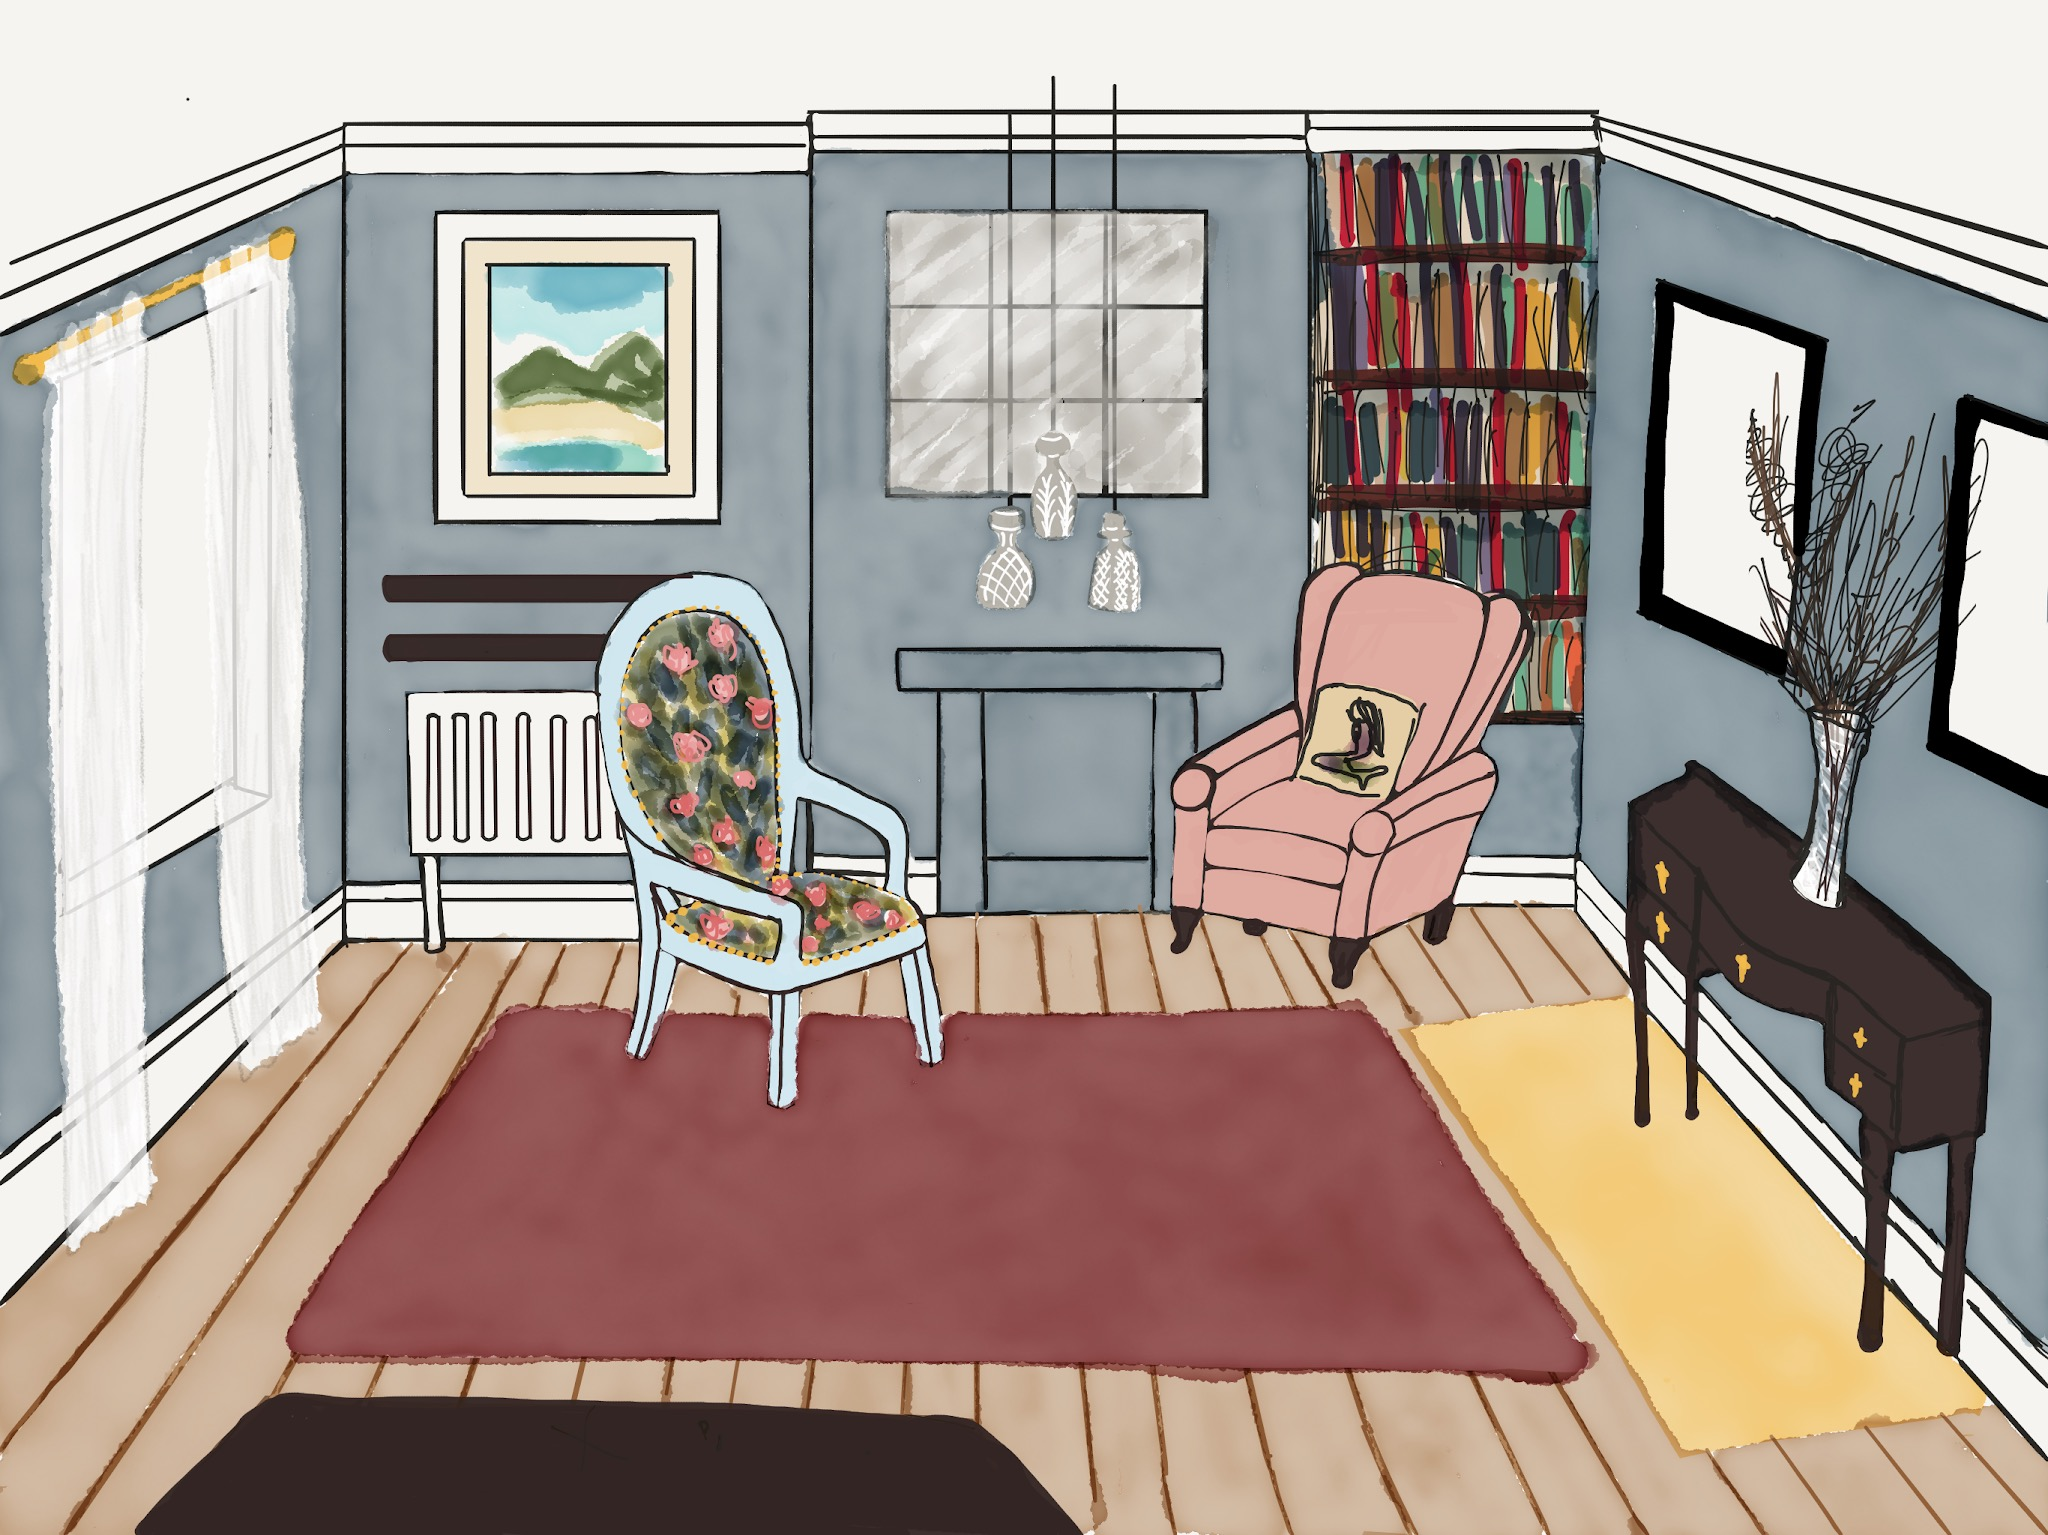 Charlotte's own sketch of a design for an upstairs snug that she's currently in the process of creating